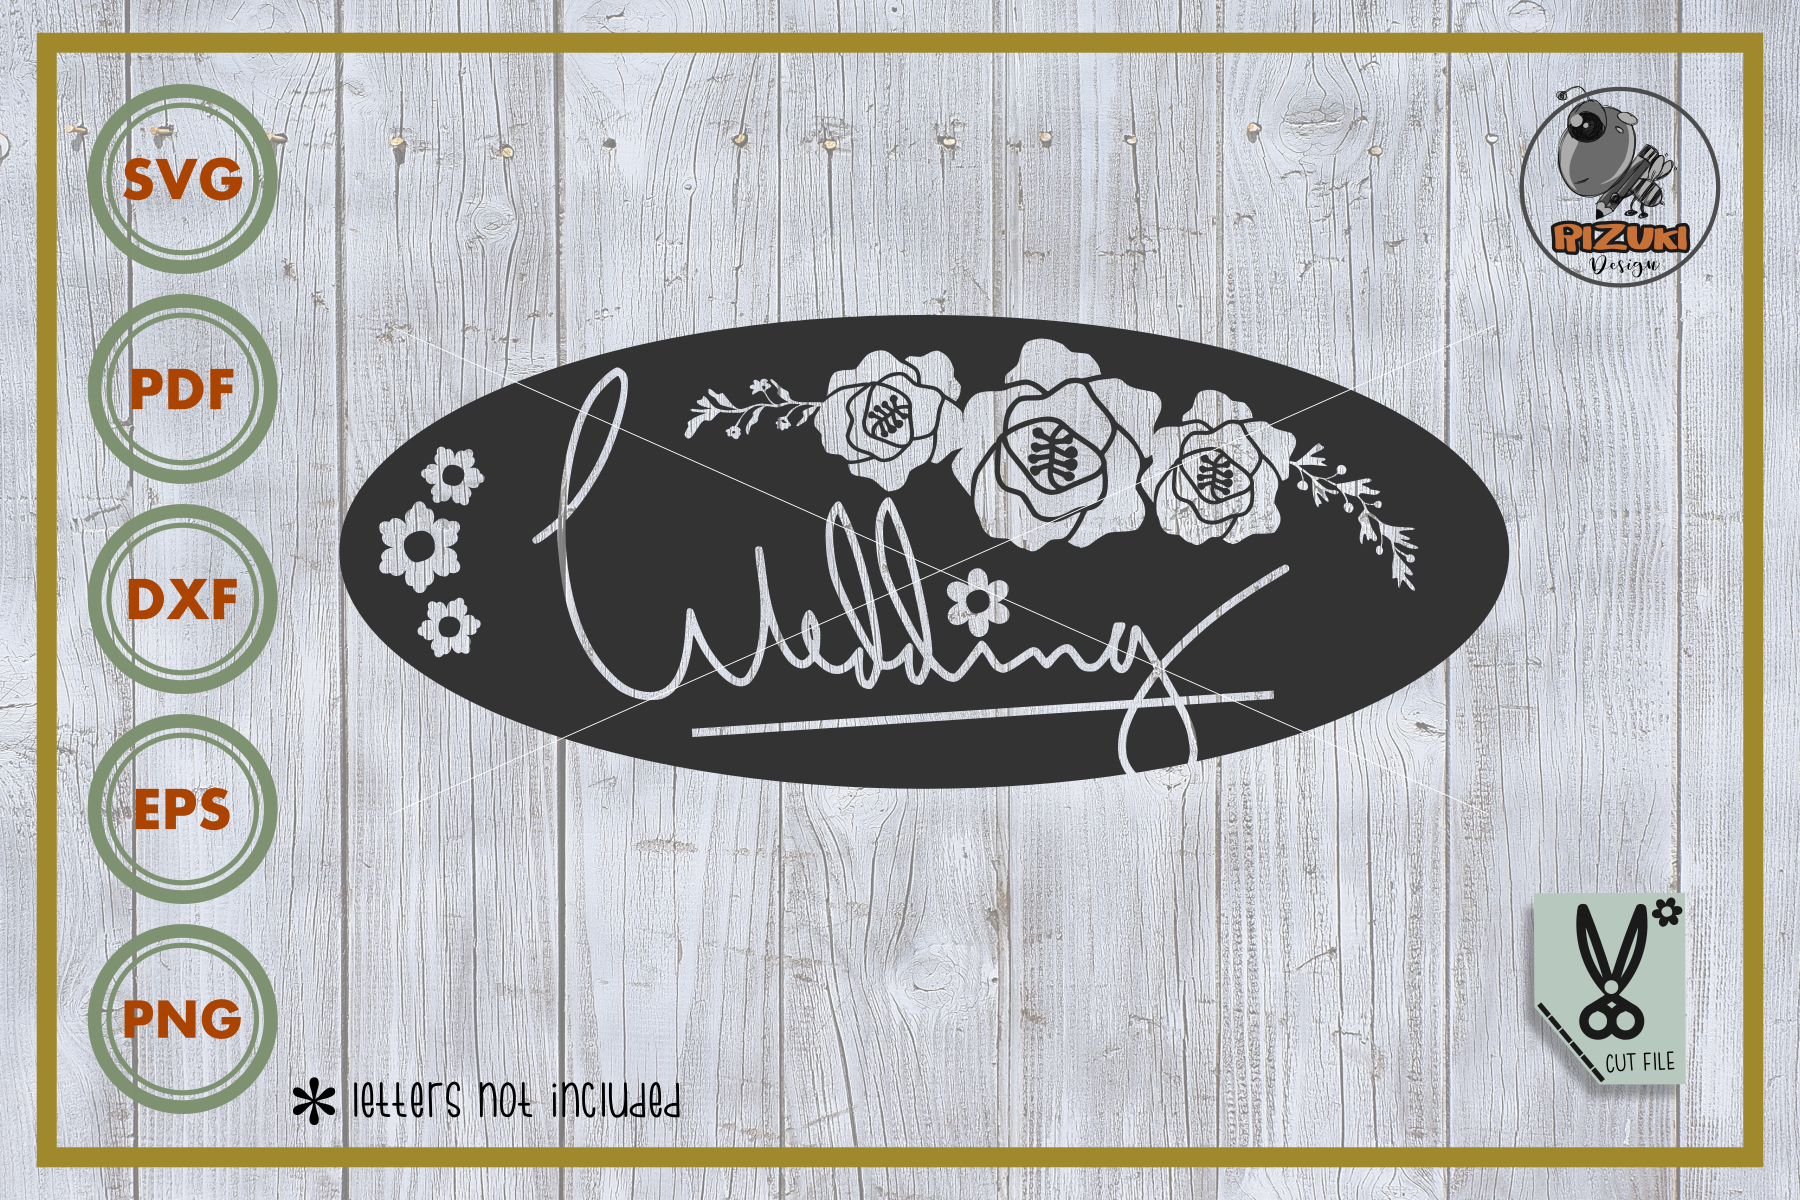 Download Free Wedding Wedding With Flower Graphic By Rizuki Store for Cricut Explore, Silhouette and other cutting machines.